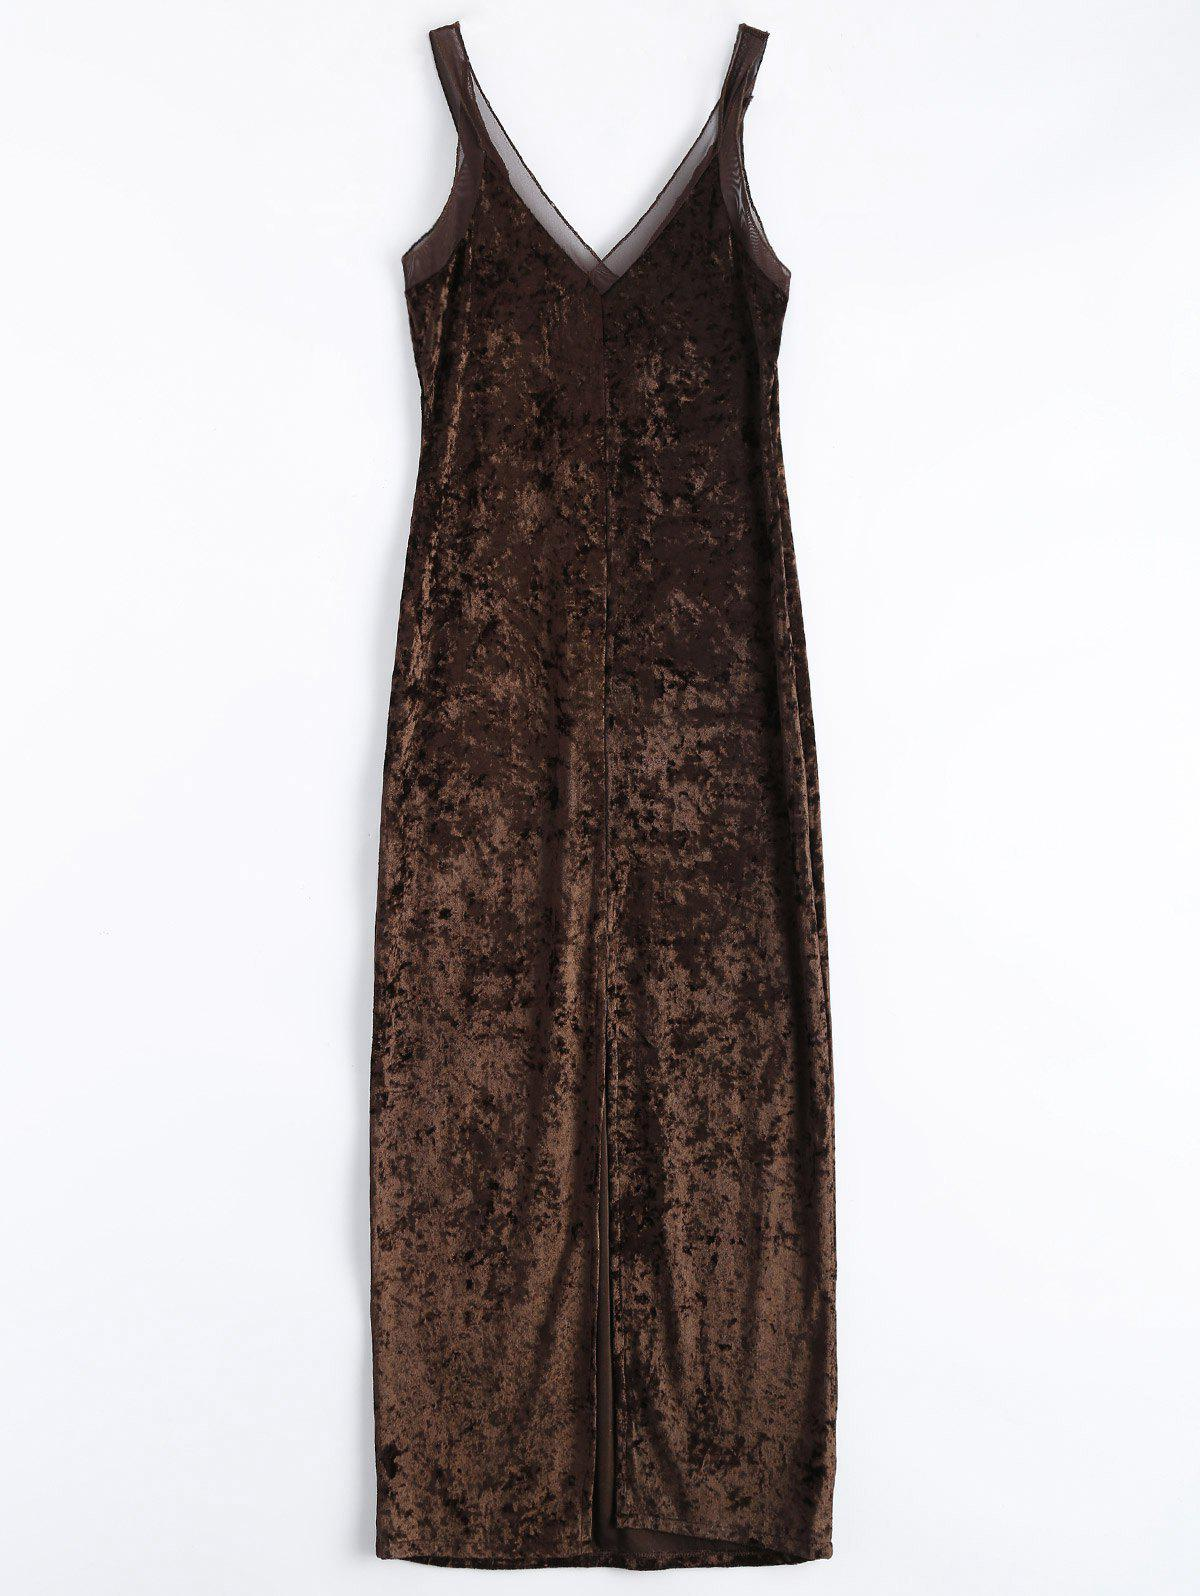 Velvet Mesh Insert Slip Fitted Dress tassel insert back fitted dress